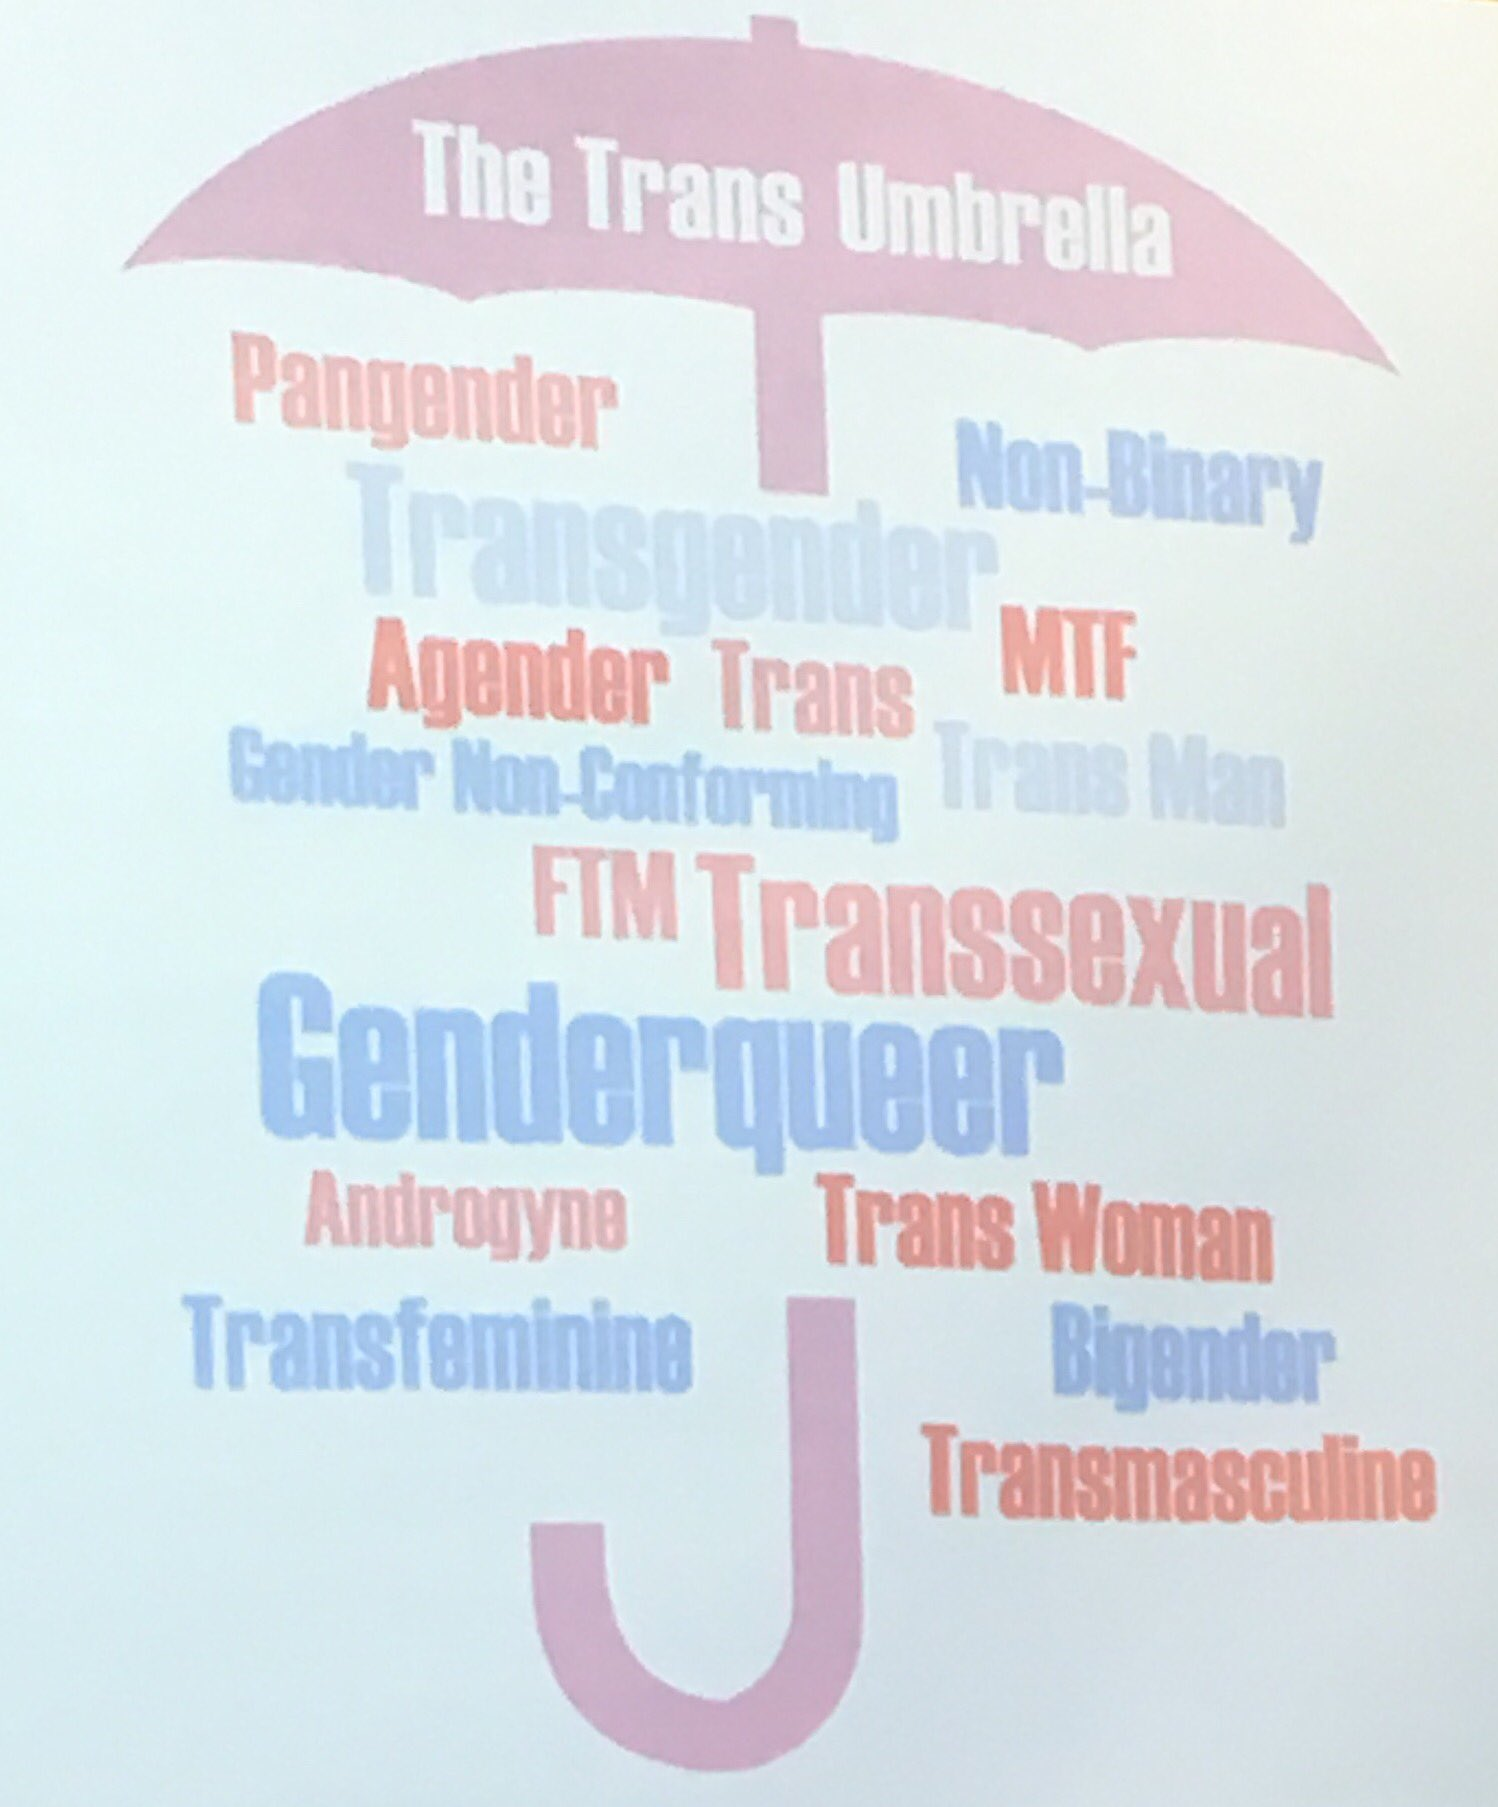 Trans101: trans 🌂 terminology evolves as language & society evolve. Ask respectful questions & refer to person w/ the language they prefer. https://t.co/sEi9Fkm6EV